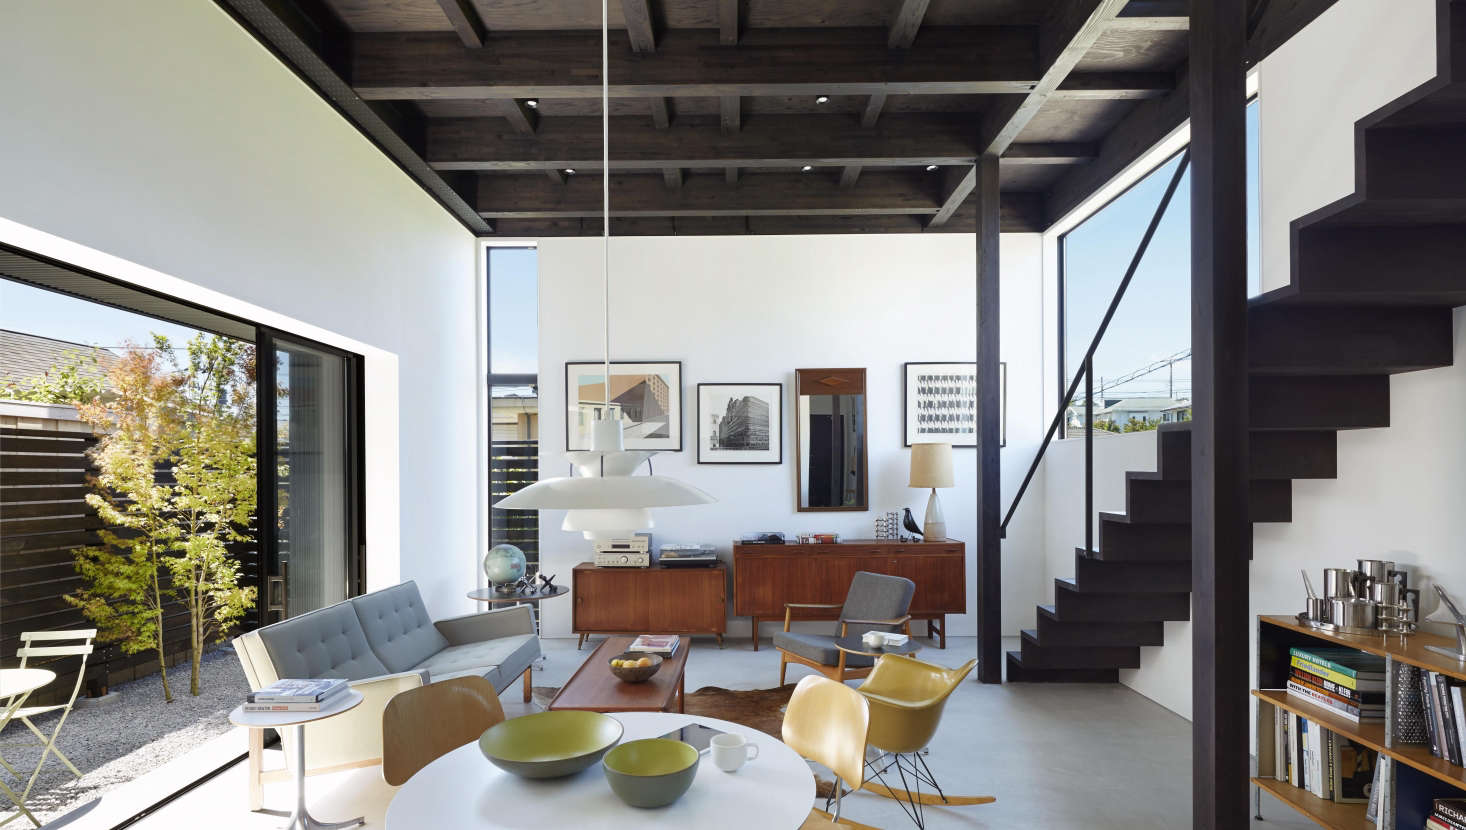 The living space is filled with natural light and cross ventilation, thanks to the north-facing windows (&#8